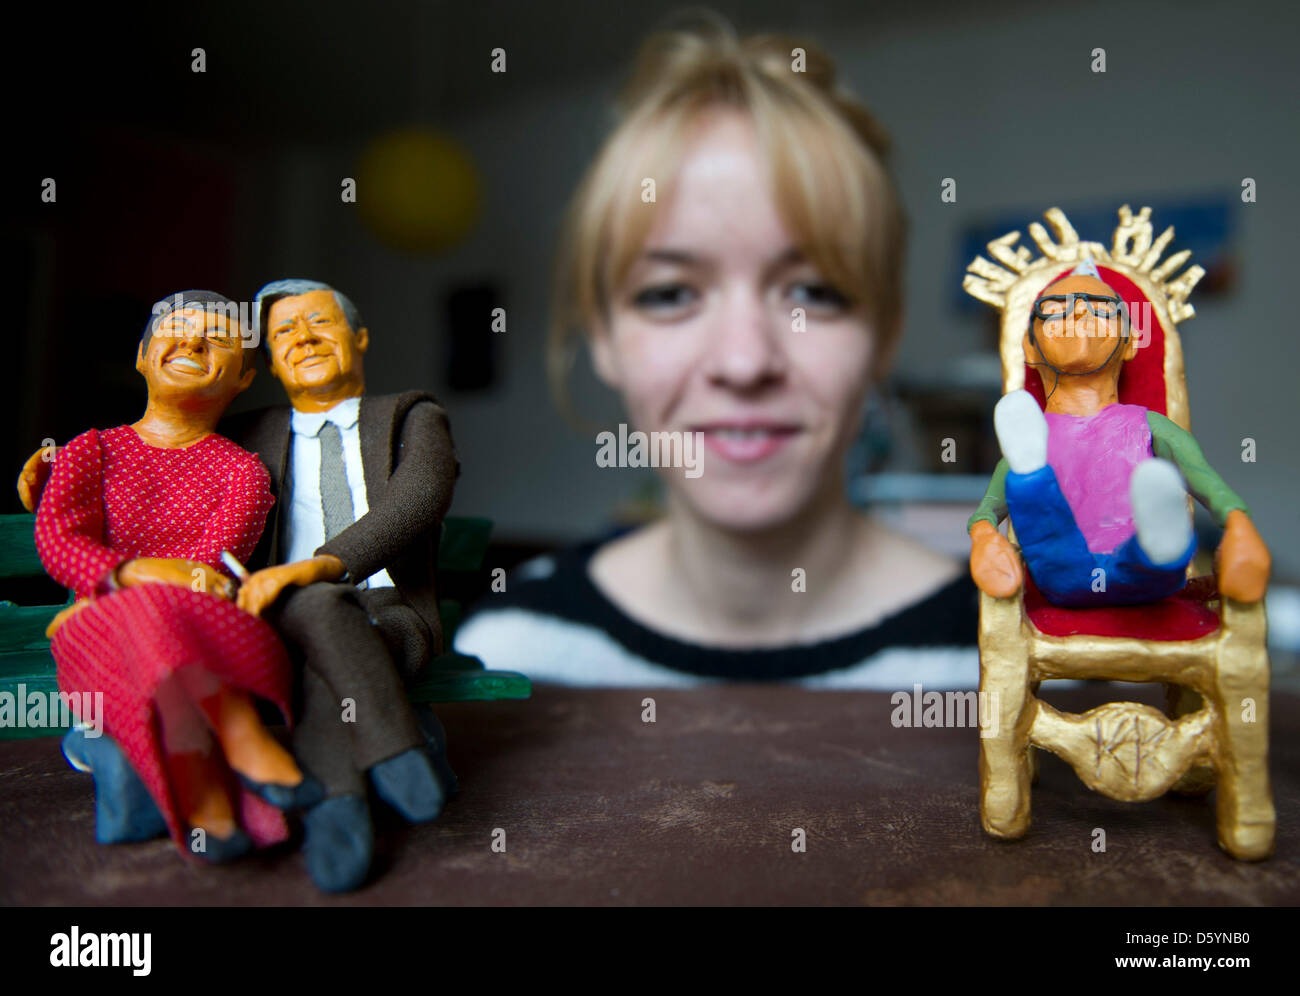 Linda Jakobson sits behind some of her clay figures of Loki Schmidt (L-R), former German Chancellor Helmut Schmidt - Stock Image